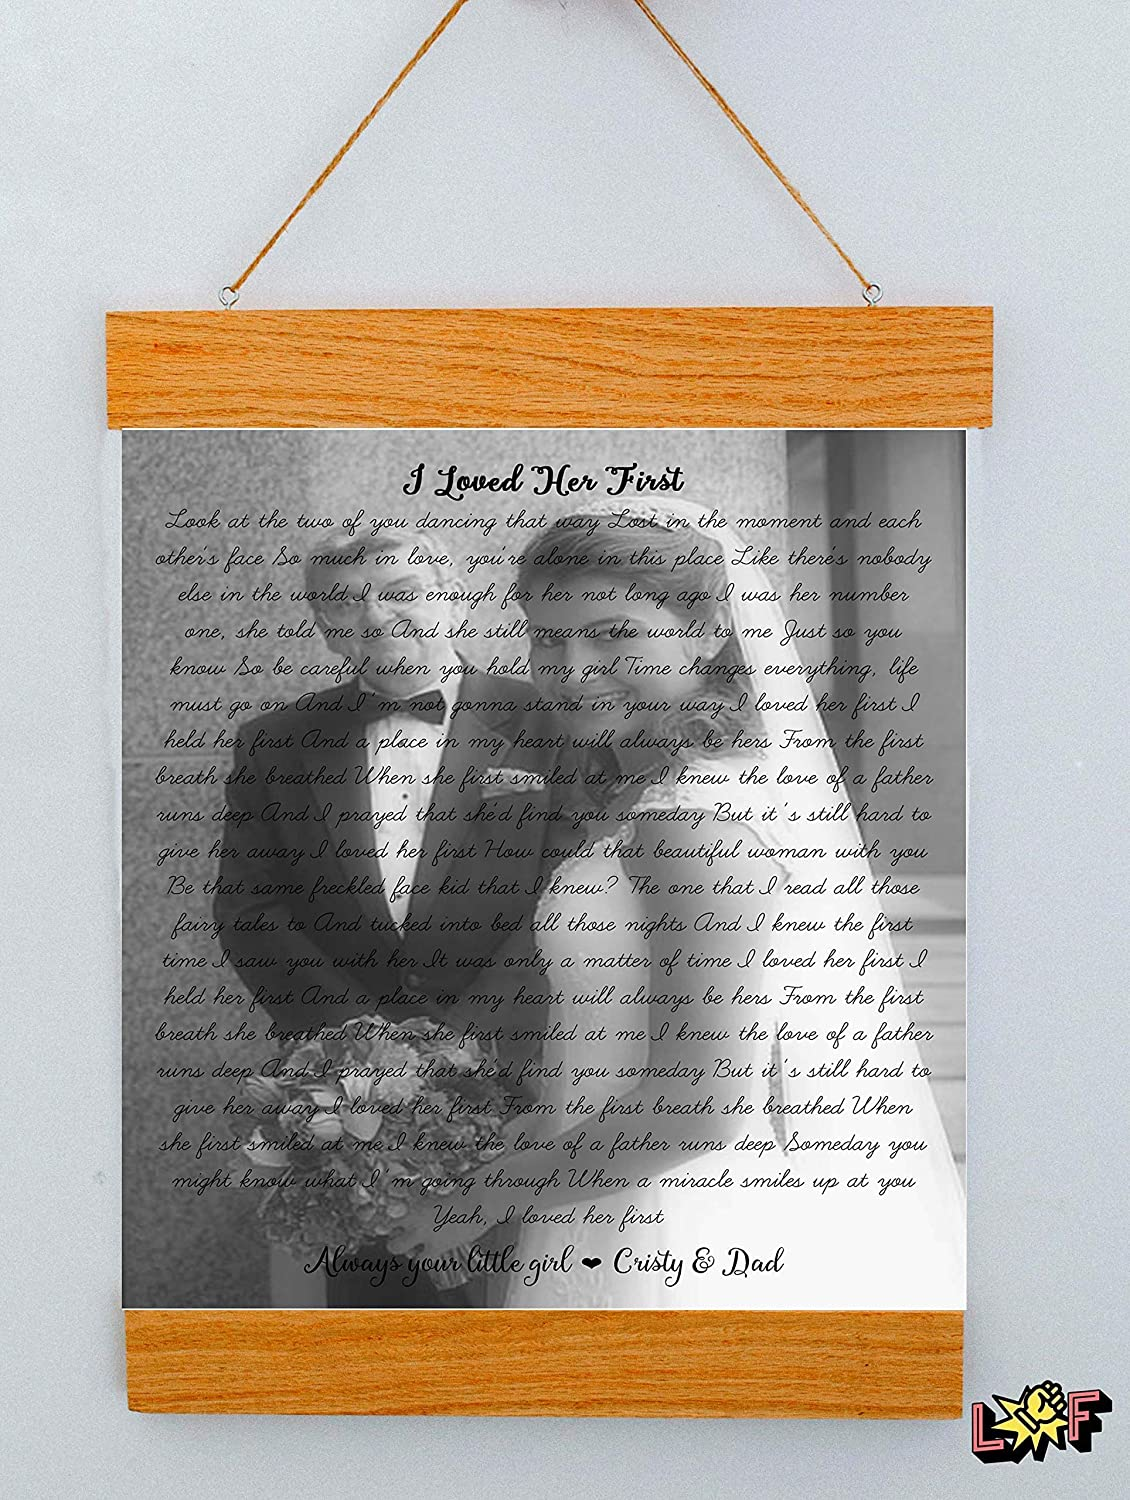 Birthday Gift for Dad from Daughter - Your Photo and Lyrics - Perfect Gifts  for Dad